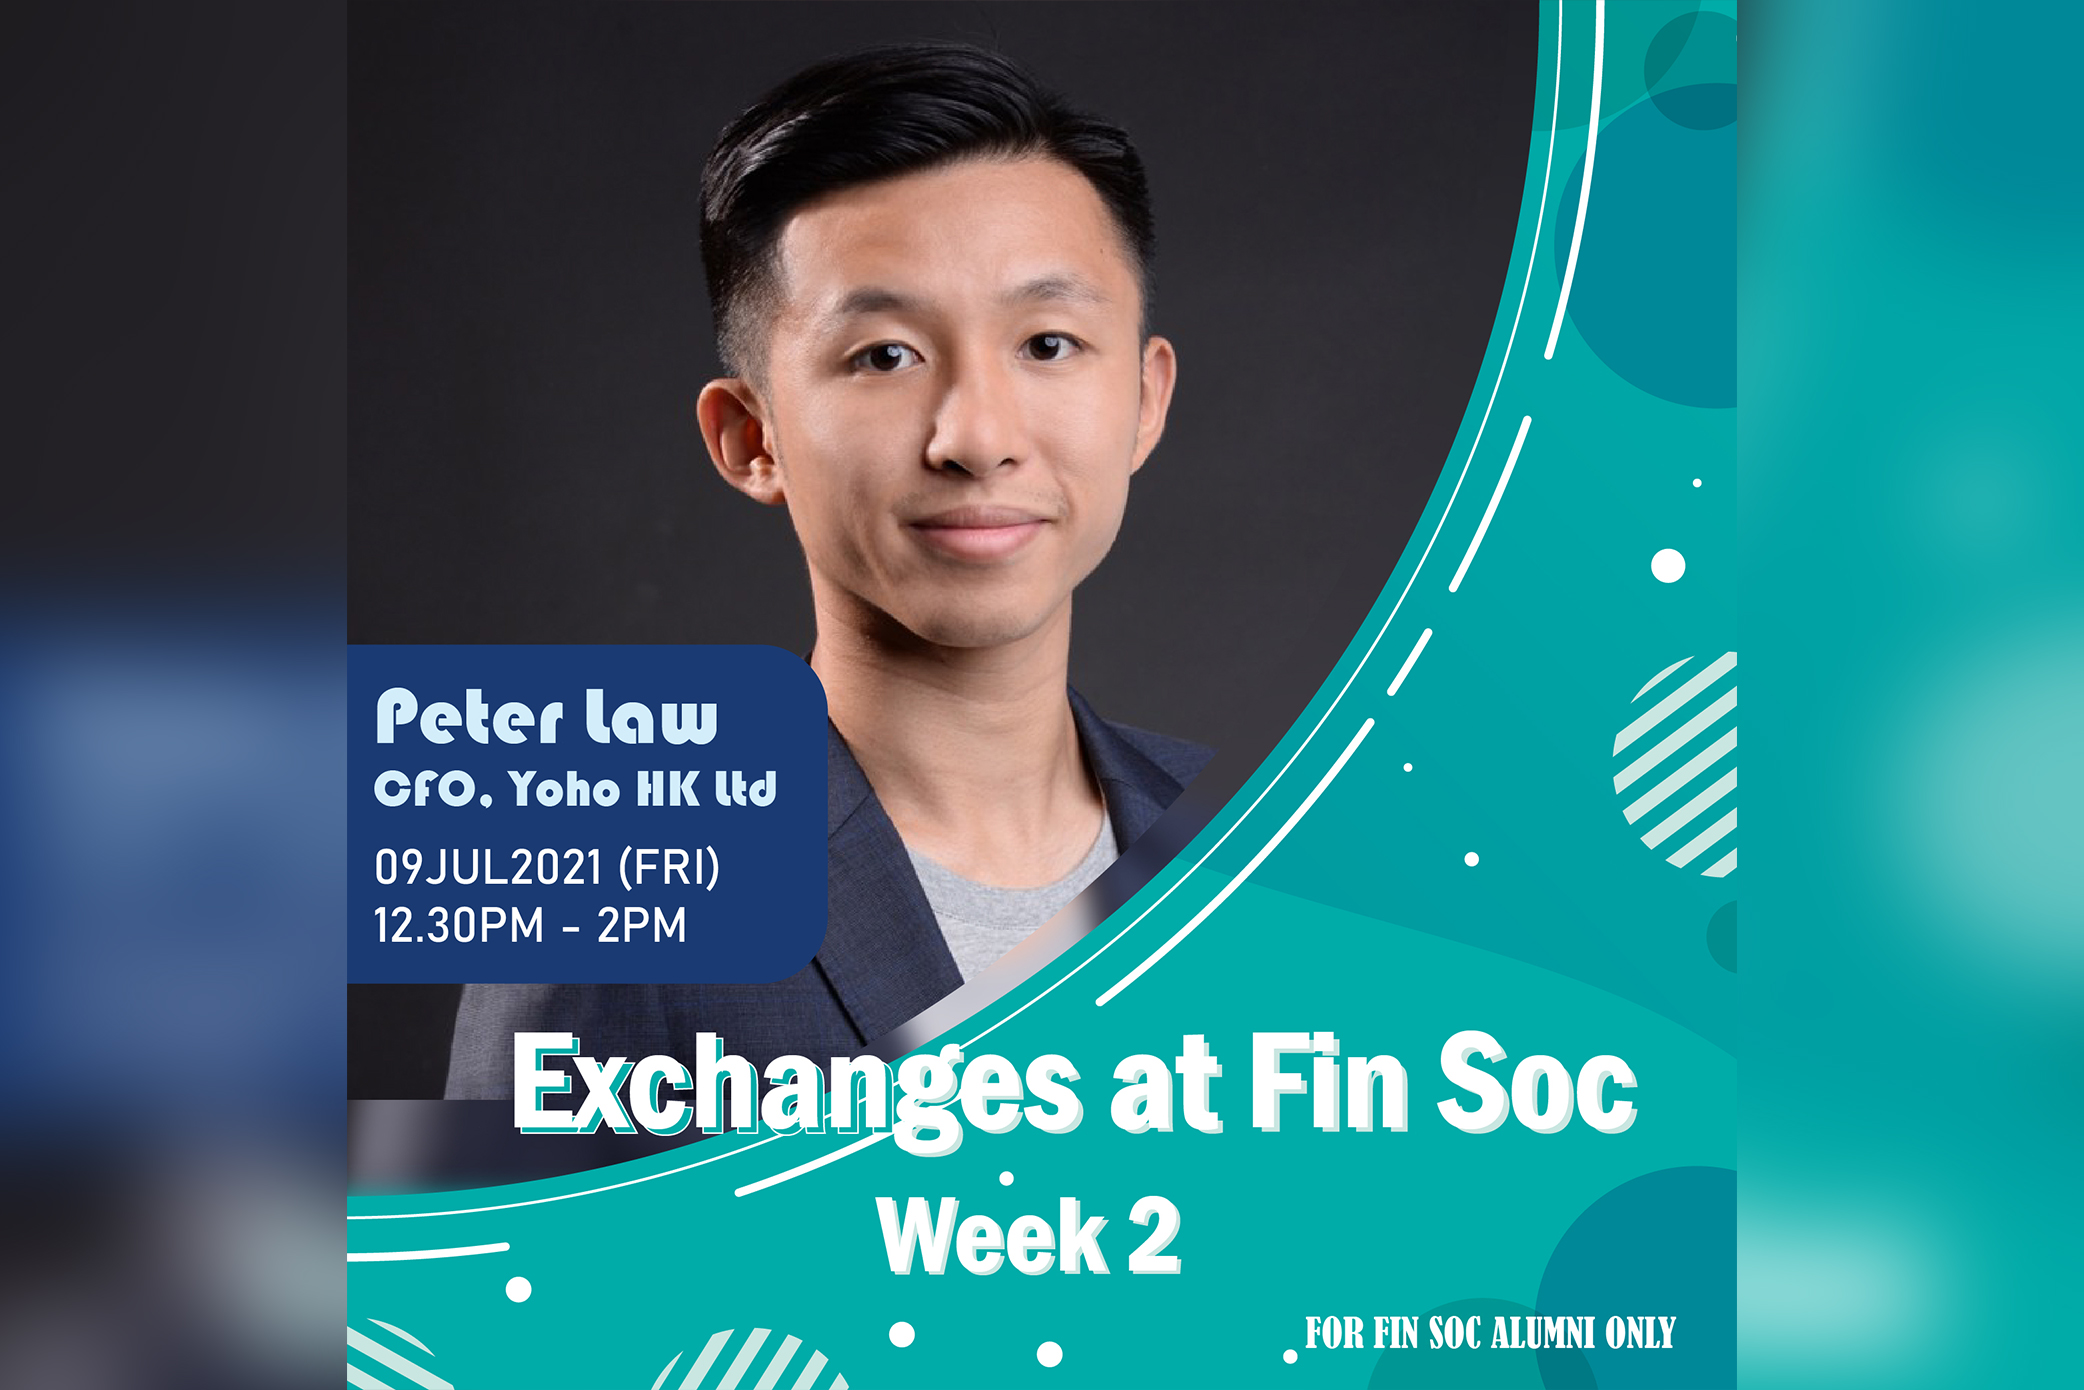 Exchanges at Fin Society - Week 2 with Peter Law, CFO of Yoho Hong Kong